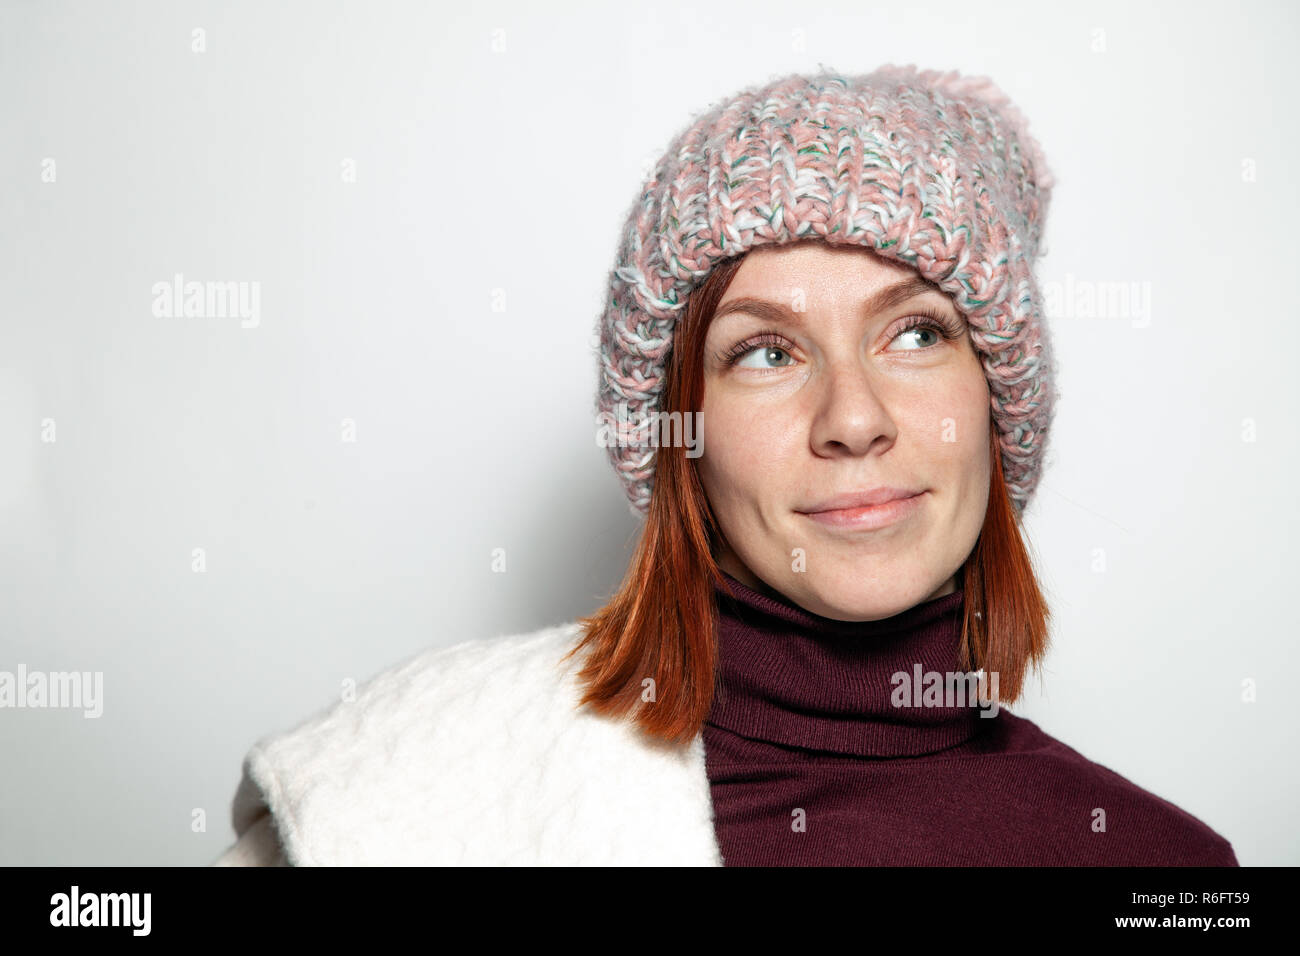 Isolated Portrait Of Beautiful Young Redhead Girl With Green Eyes White And Purple Sweater And Pink Knitted Hat With Pompon Dressed Sideways Smiling O